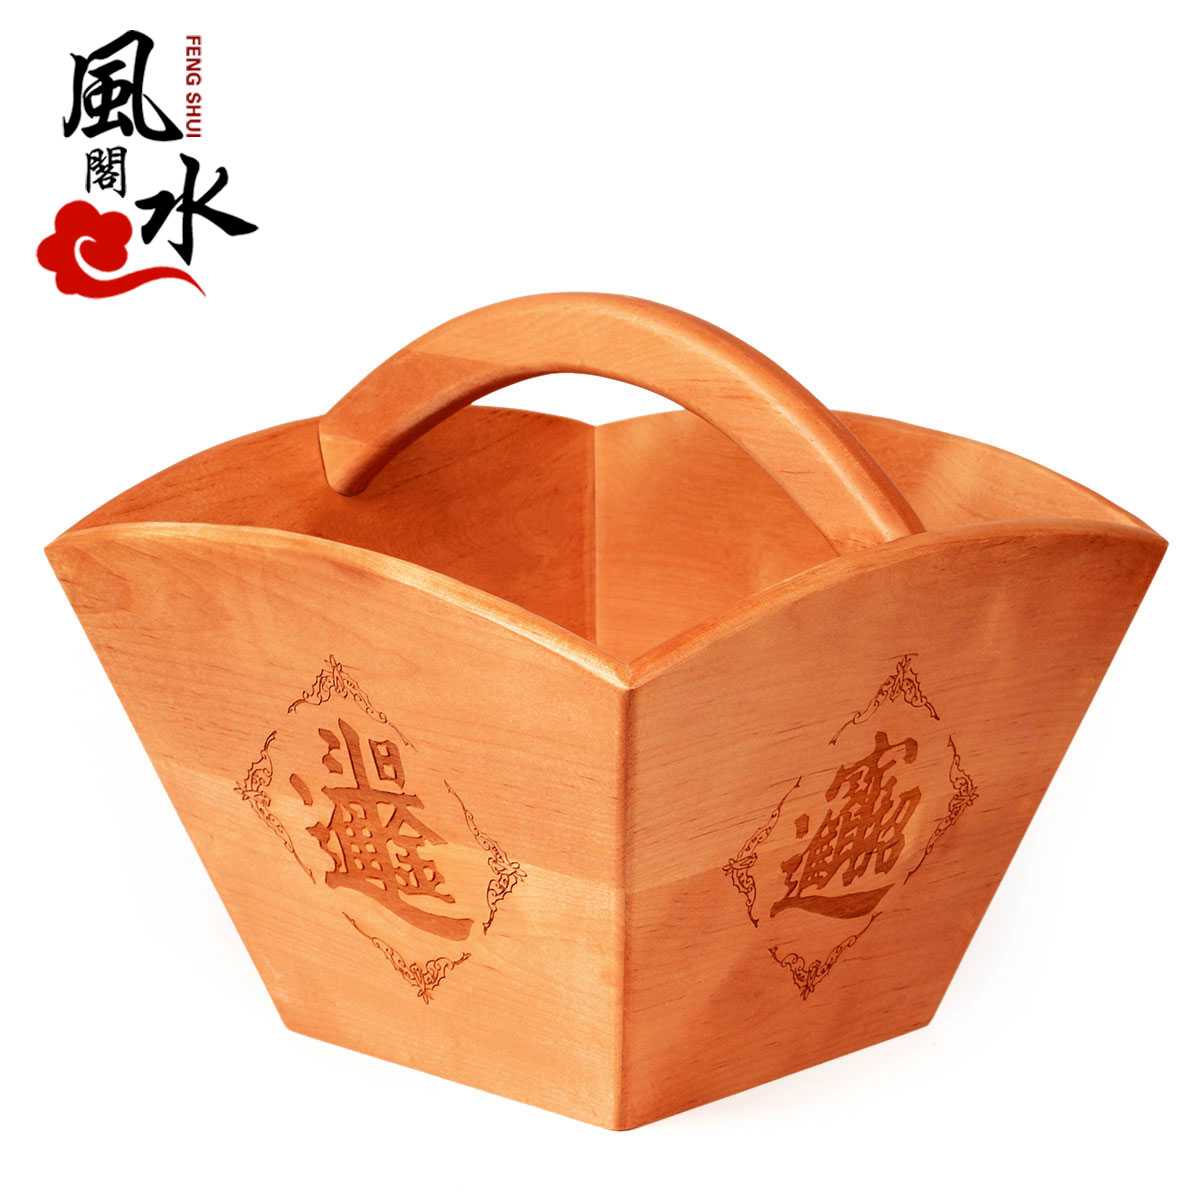 Feng shui court archaized m bucket ornaments rijindoujin mahogany mahogany feng shui ornaments lucky cai home accessories